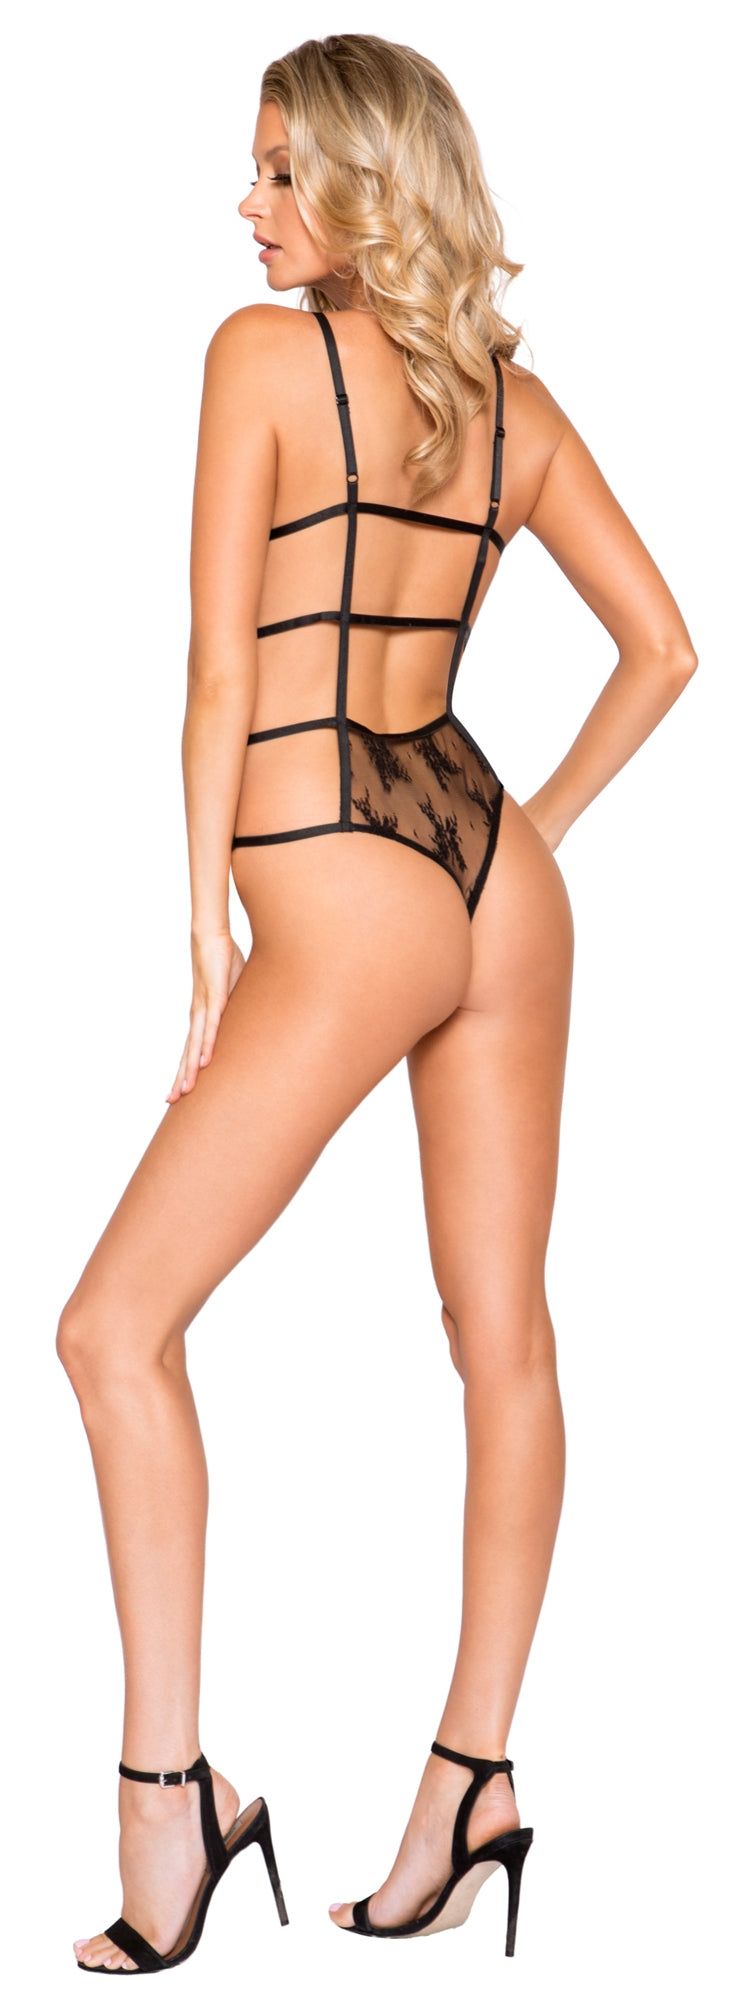 RM-LI273 High neckline sheer lace teddy back